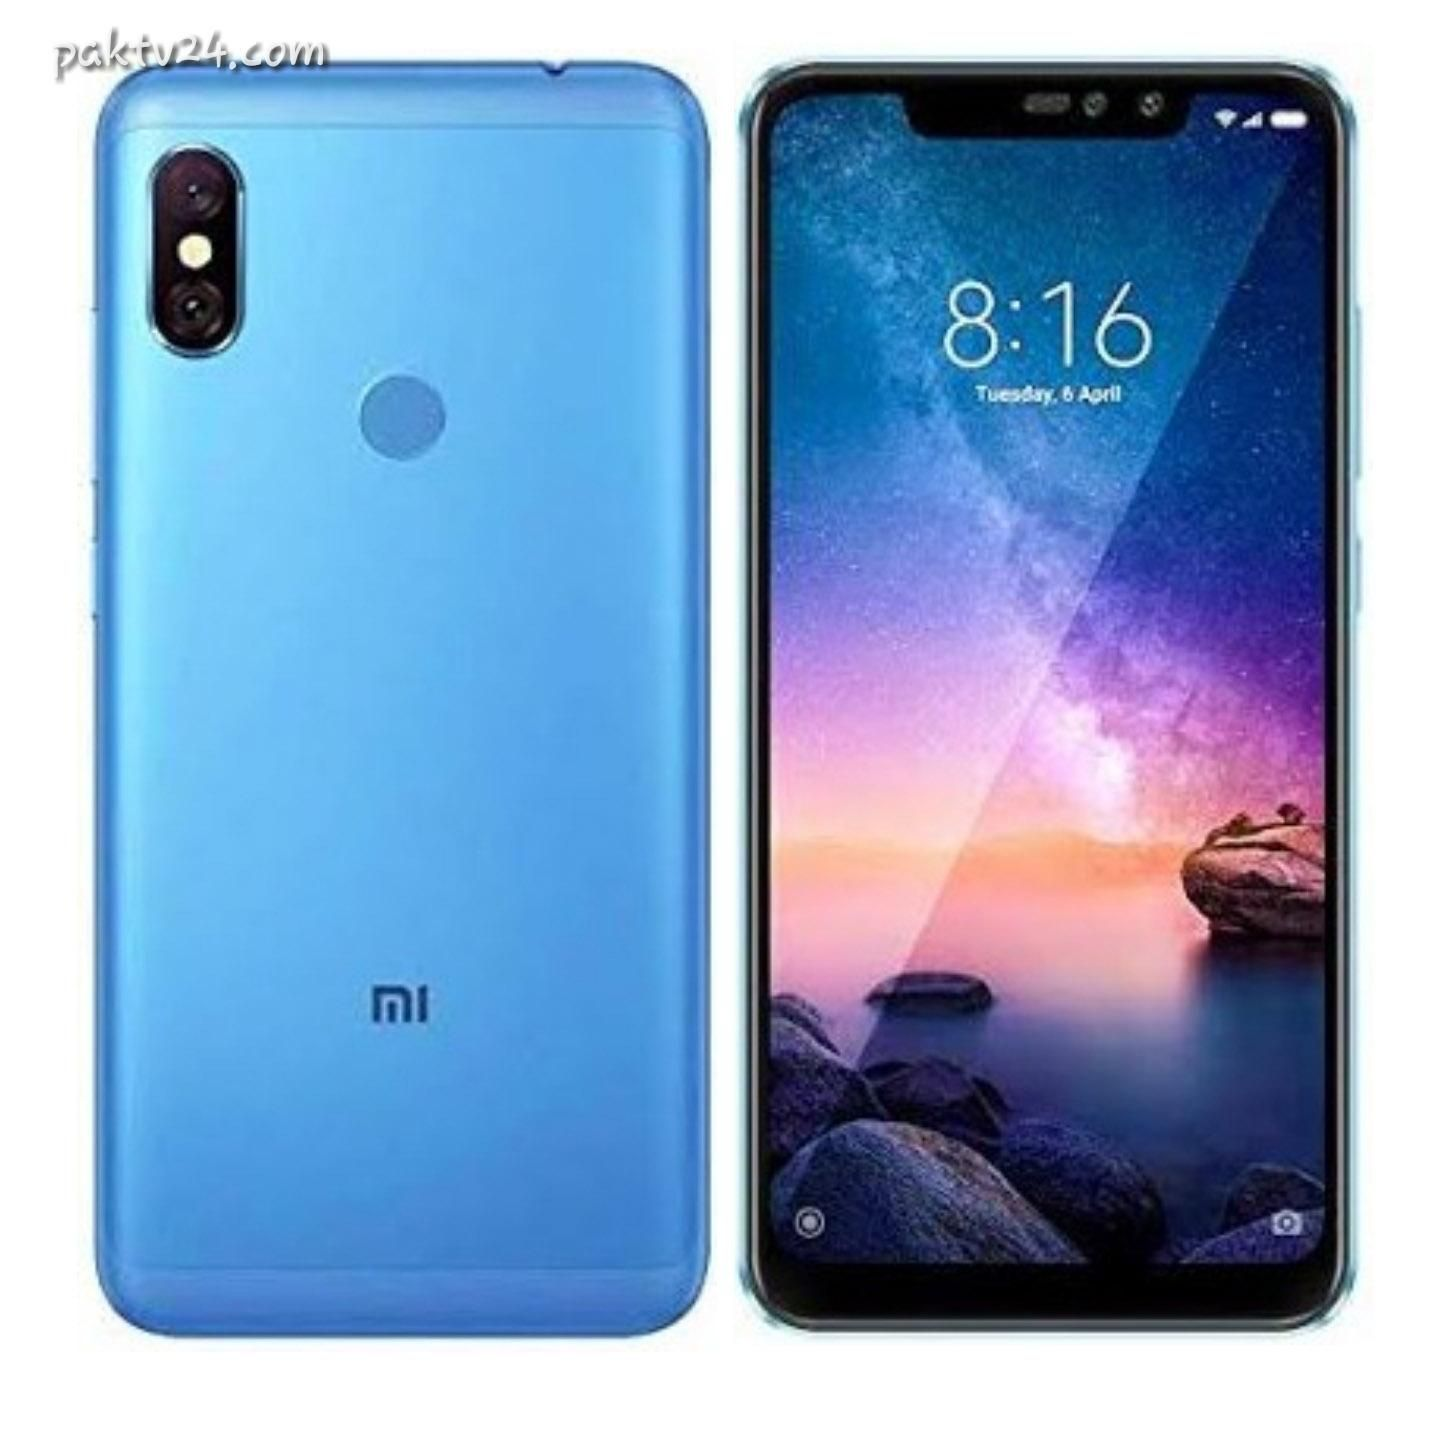 Xiaomi Redmi Note 6 Pro Price And Specifications Xiaomi Best Mobile Mobile Price